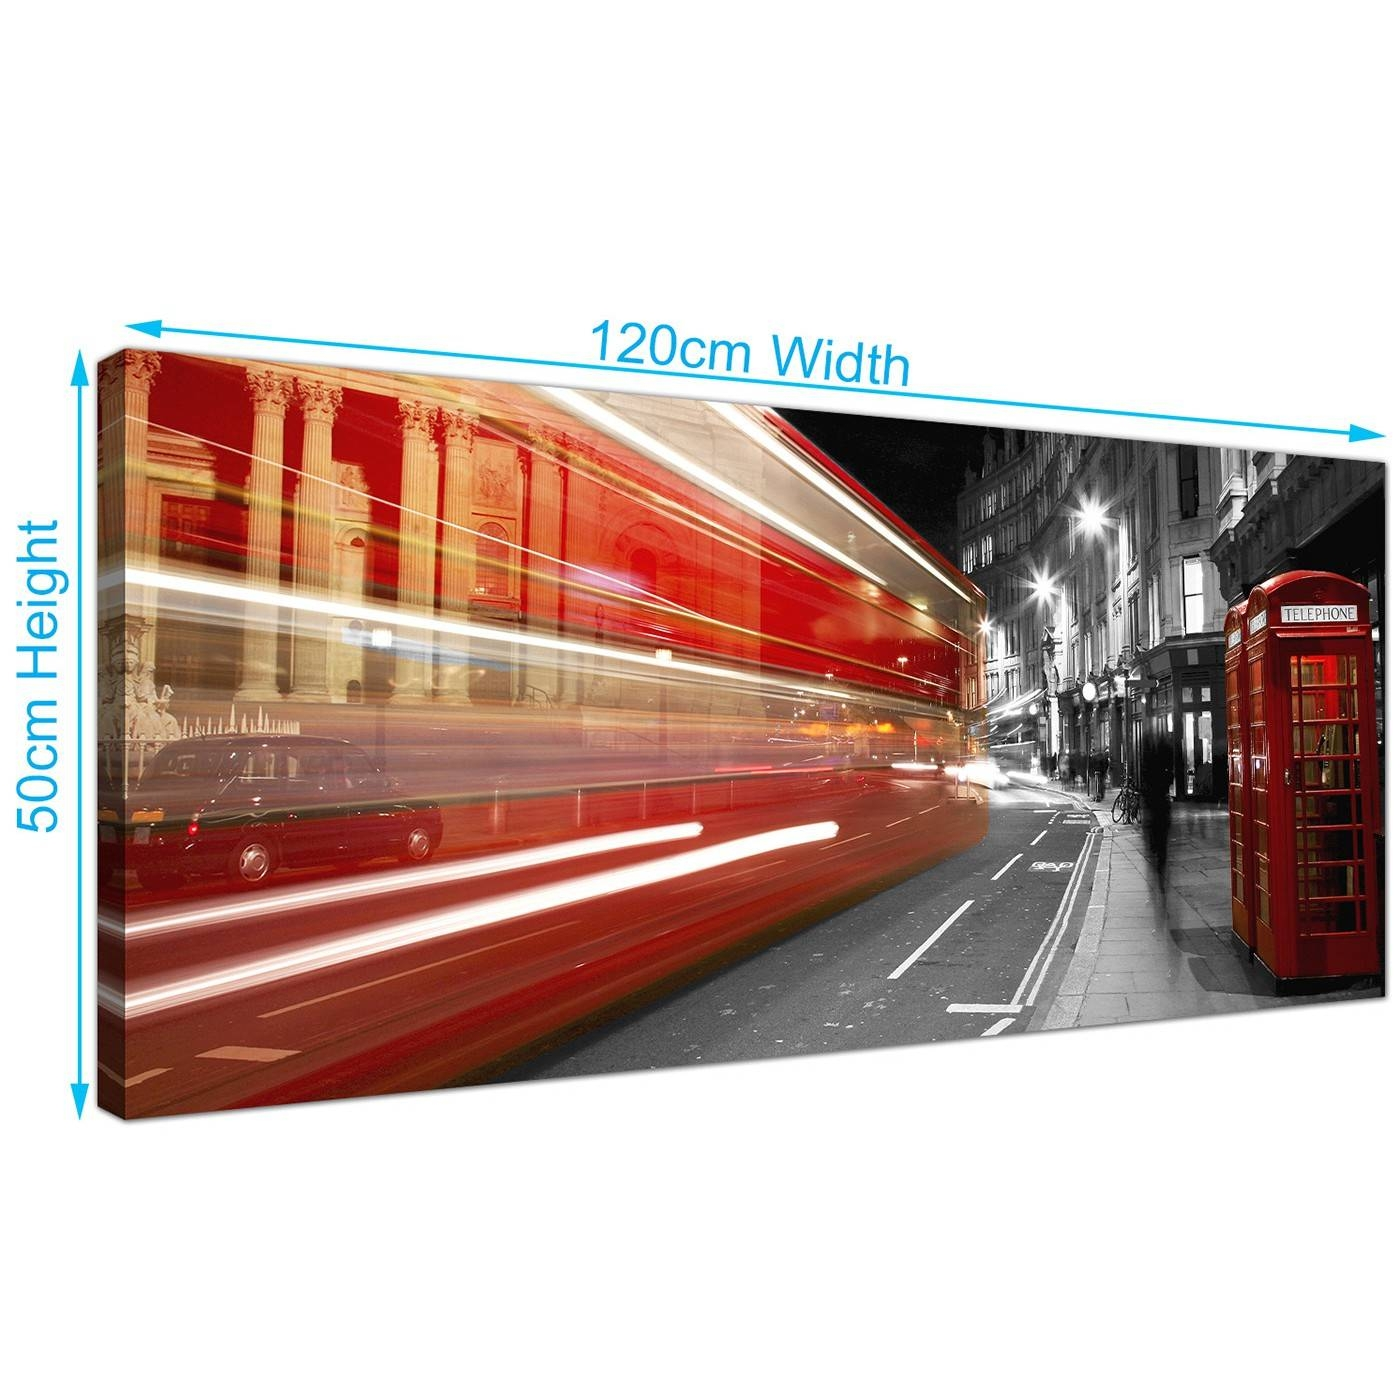 Modern Black And White Canvas Wall Art Of A Red London City Night Bus Within Most Recent London Scene Wall Art (View 5 of 20)